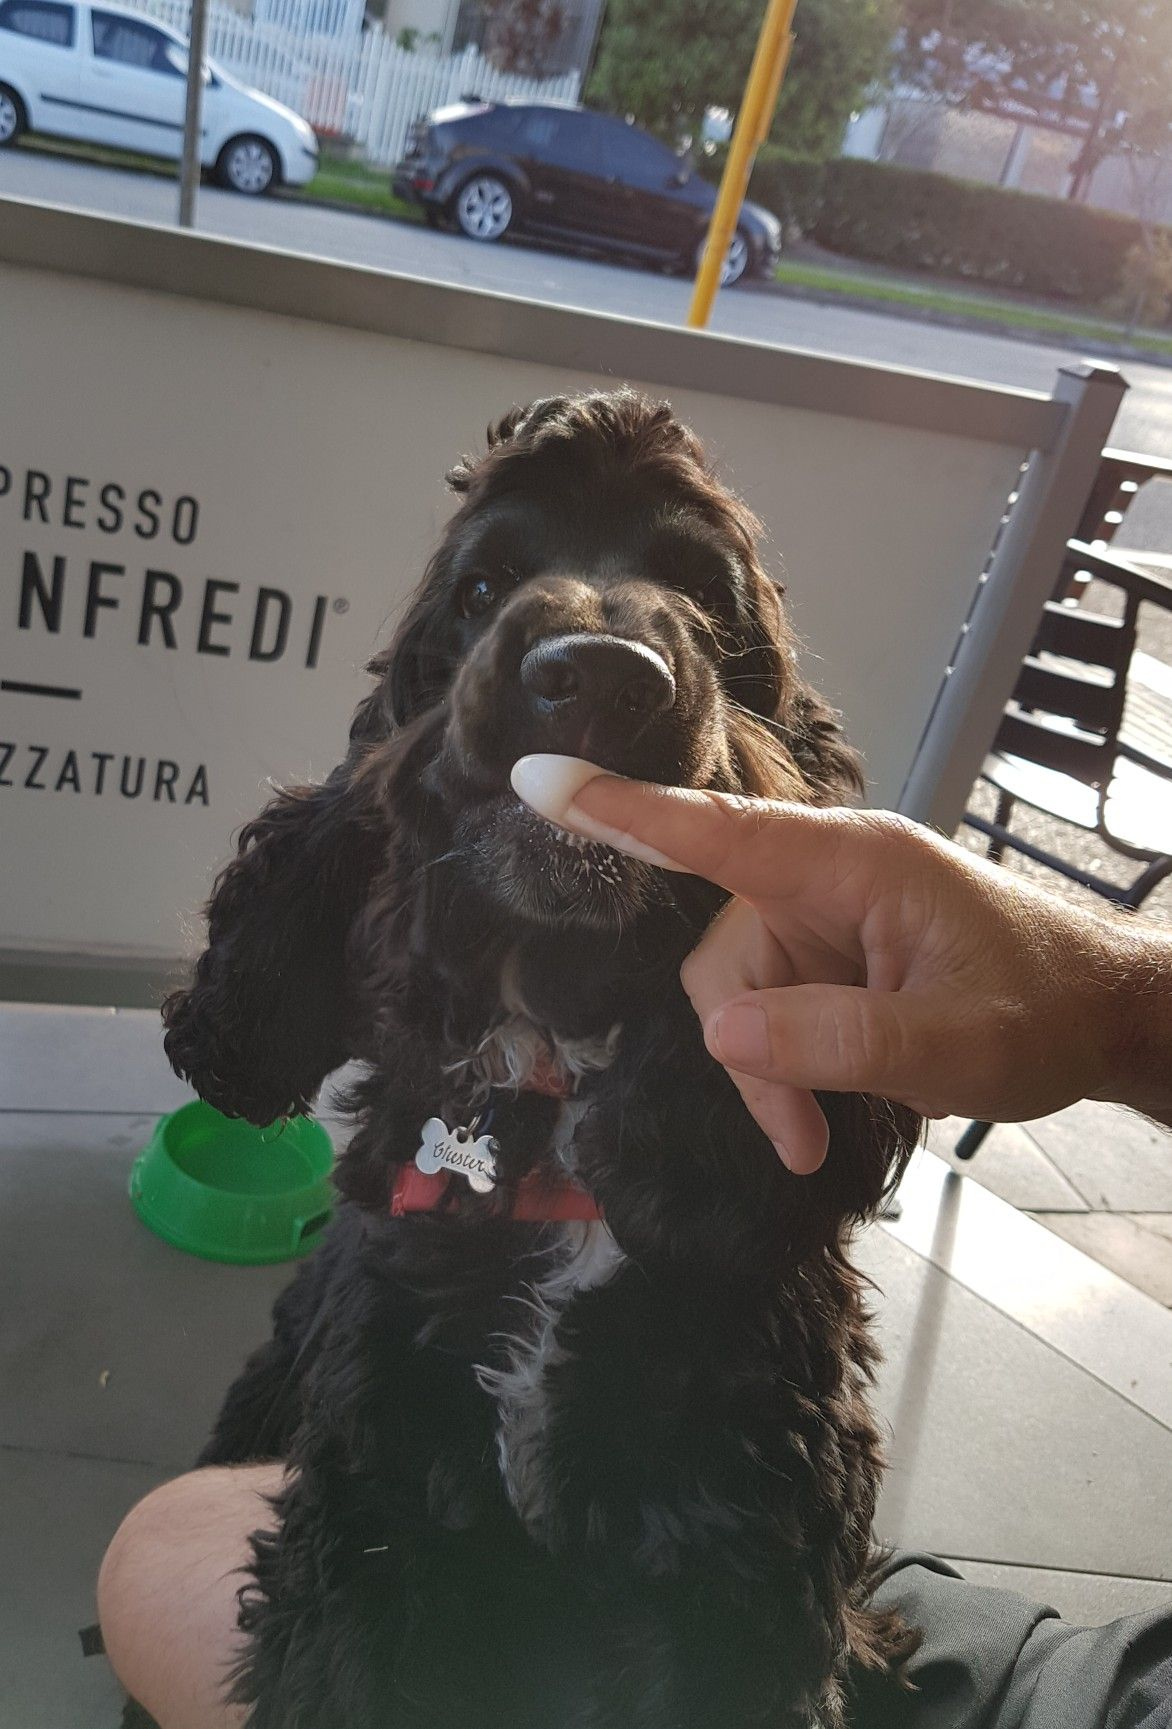 Chester Loves His Lactose Free Milk Froth